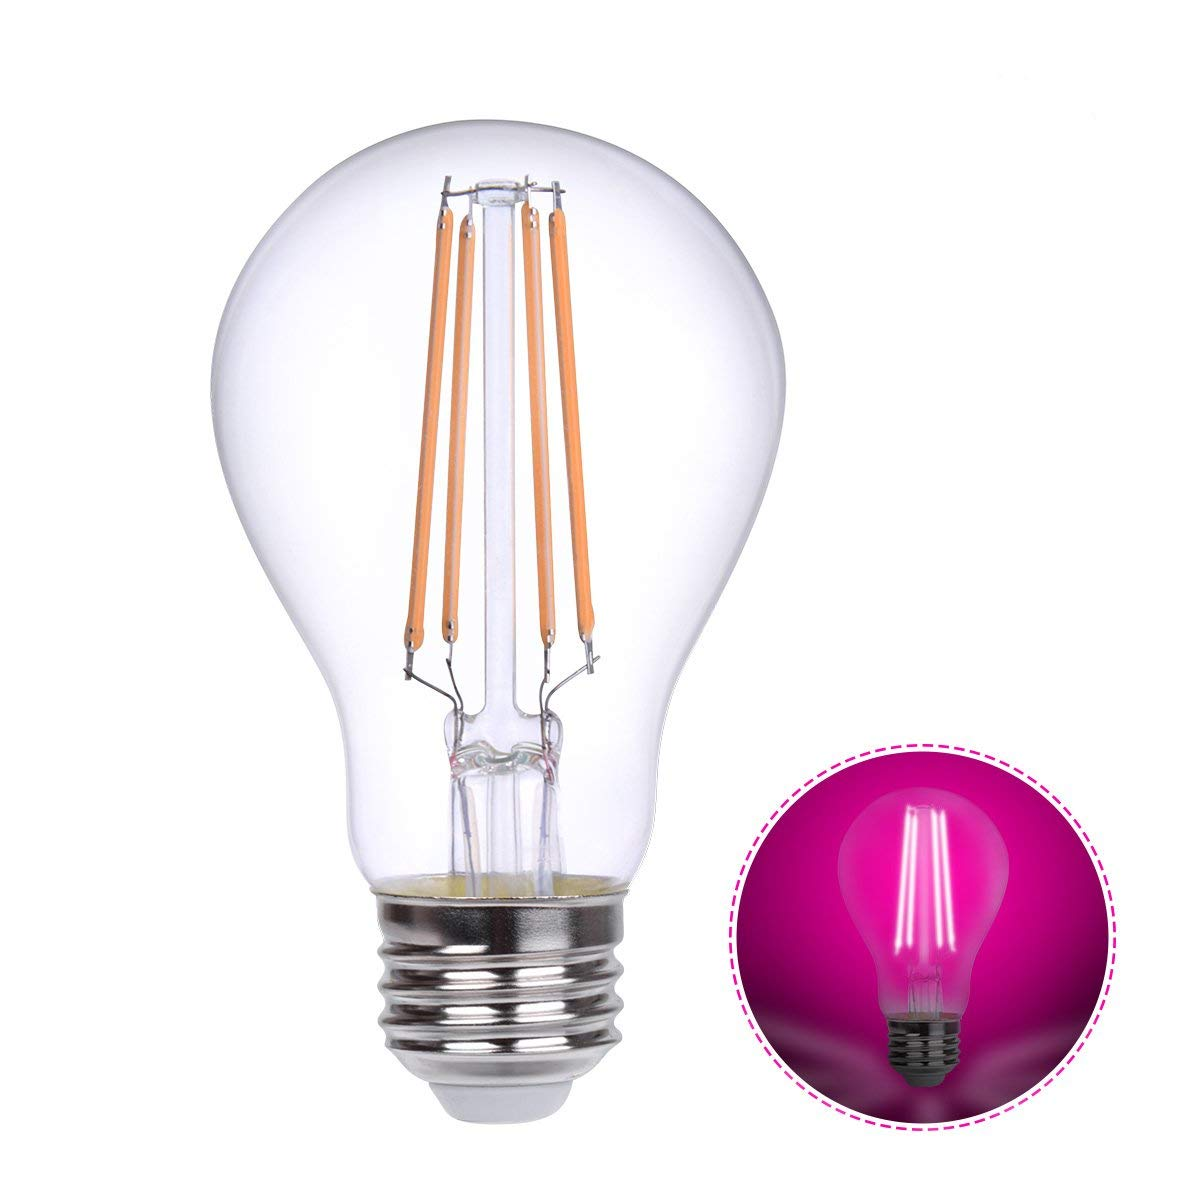 HOLA LED Grow Lights Bulb E26, LED Growing Lamp for Indoor Plants, Vegetables, Flowering, Greenhouse Plant Lights, A19 LED Filament Grow Lighting, 360° Beam Angle Pink Light, Non-Dimmable